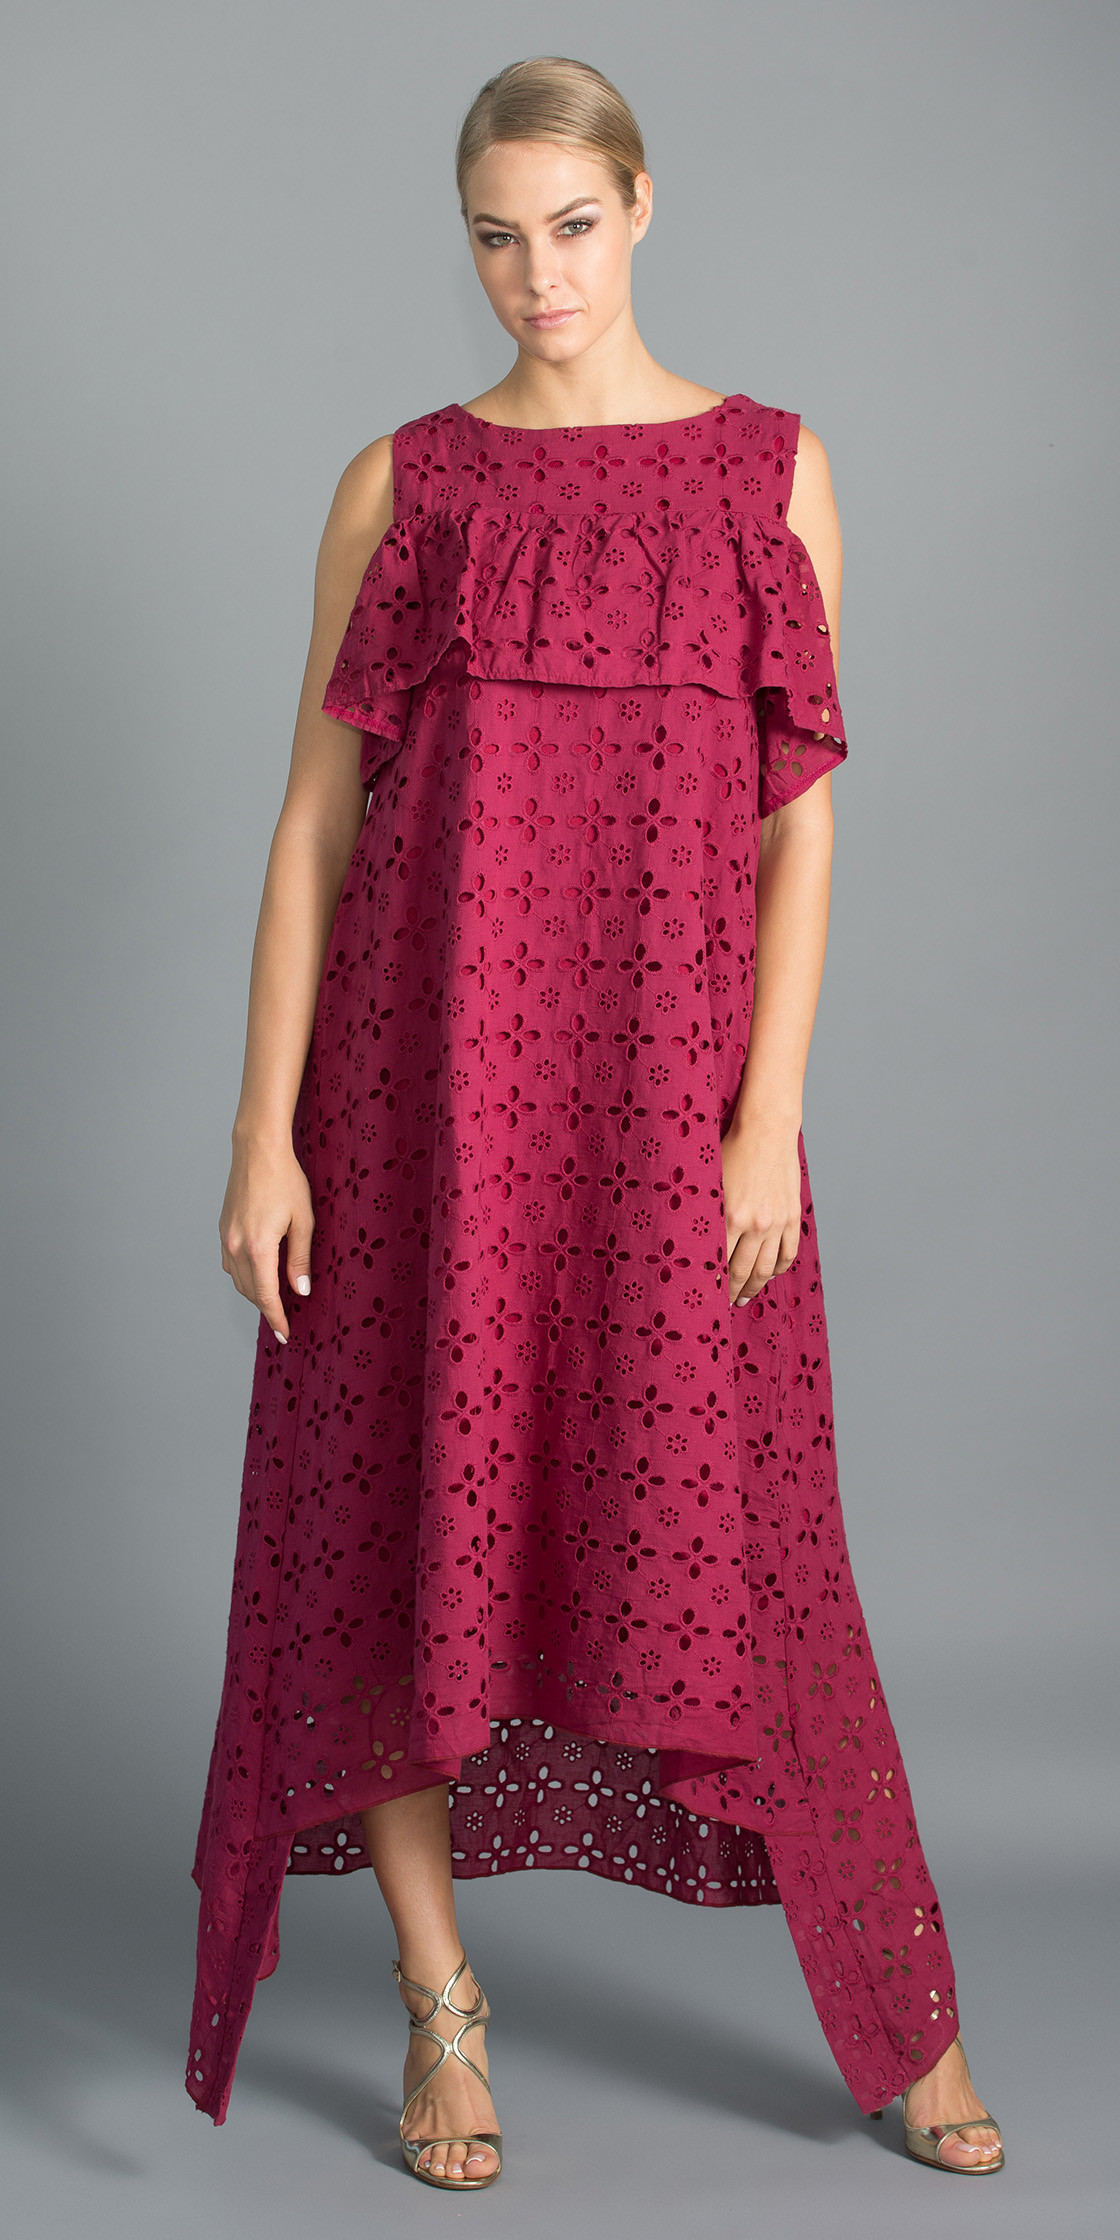 Al Jawhara Lace Ruffled Dress